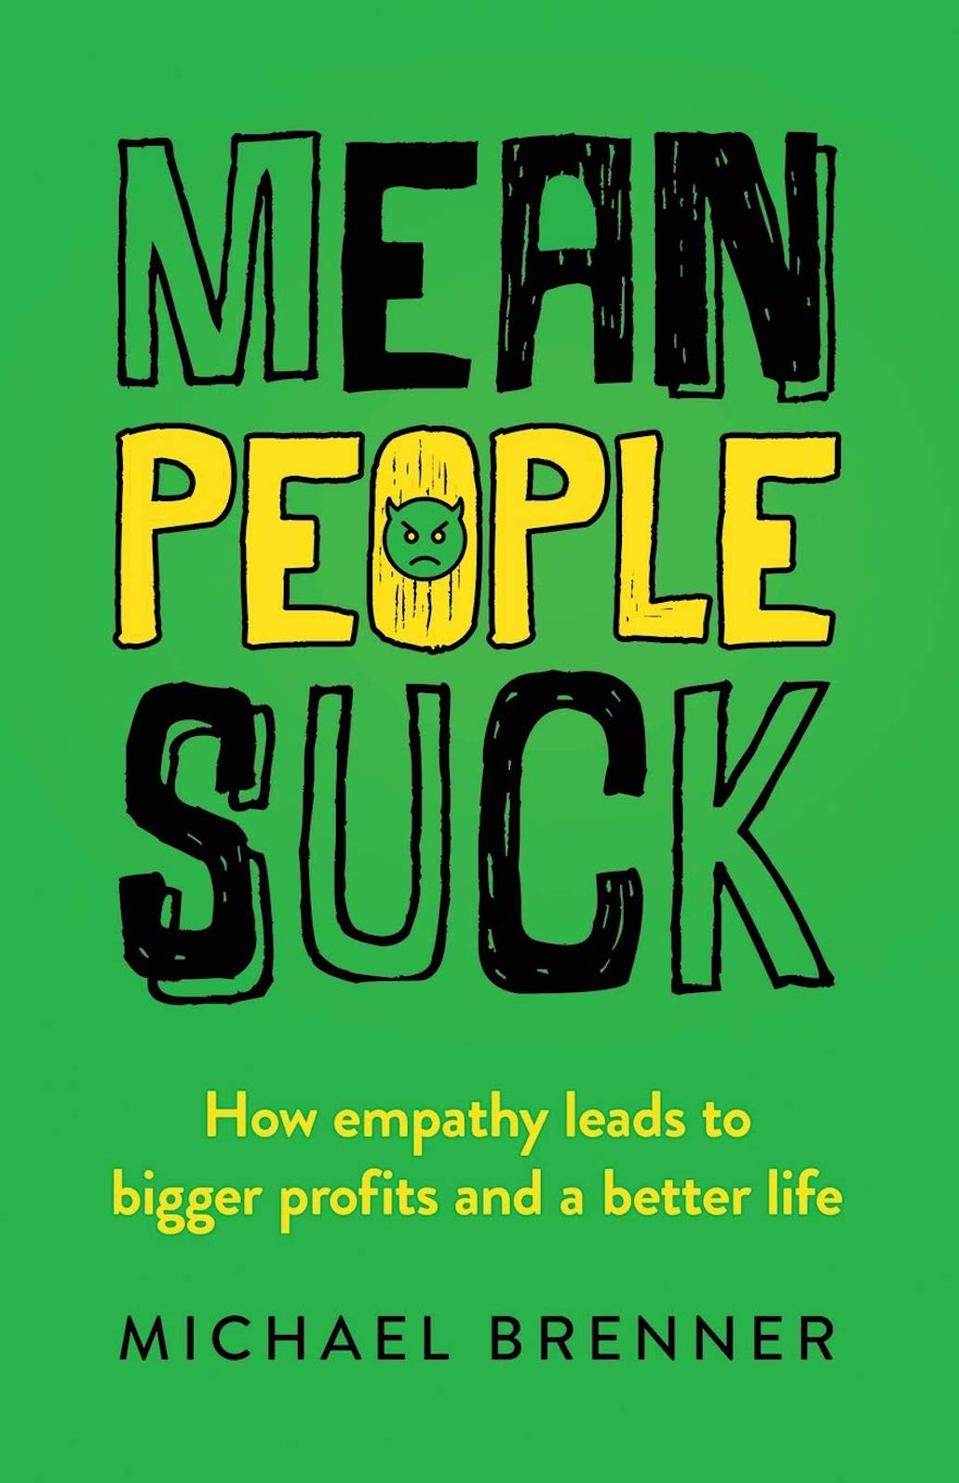 Mean People Suck: How Empathy Leads to Bigger Profits and a Better Life by Michael Brenner